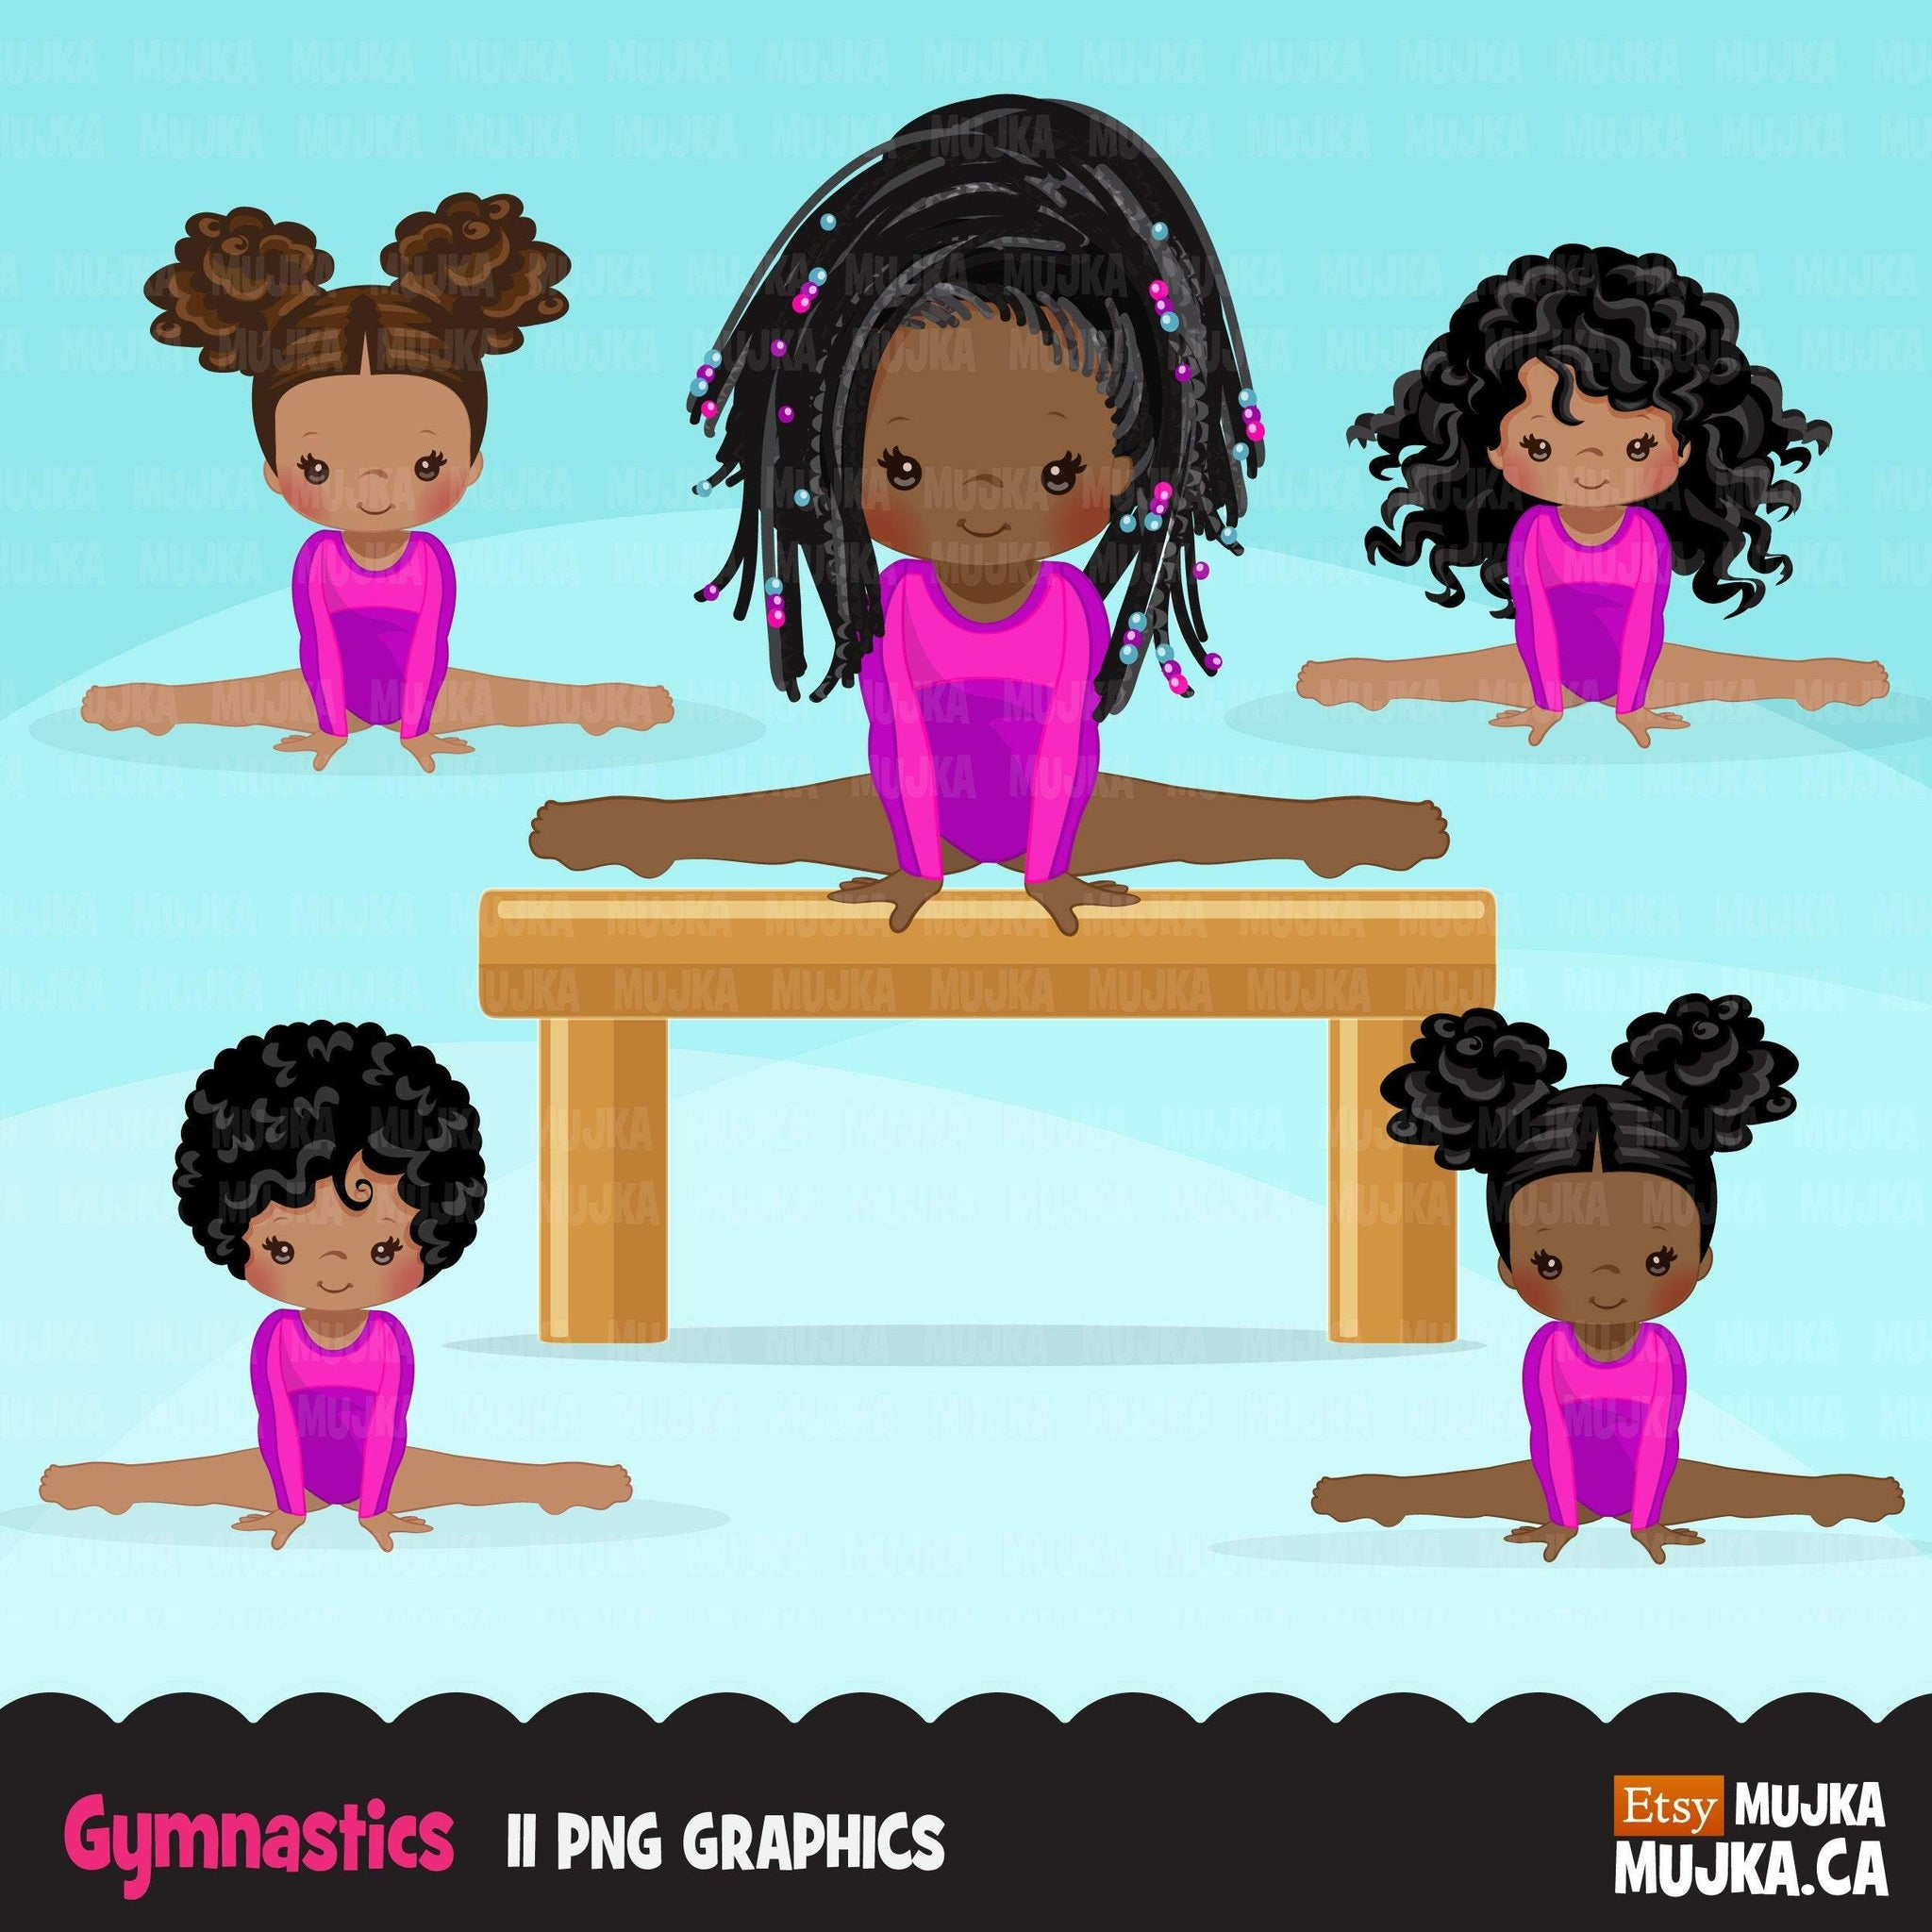 Gymnastics Clipart, Gymnast black girls, balance bar, sports, school activity, commercial use PNG graphics